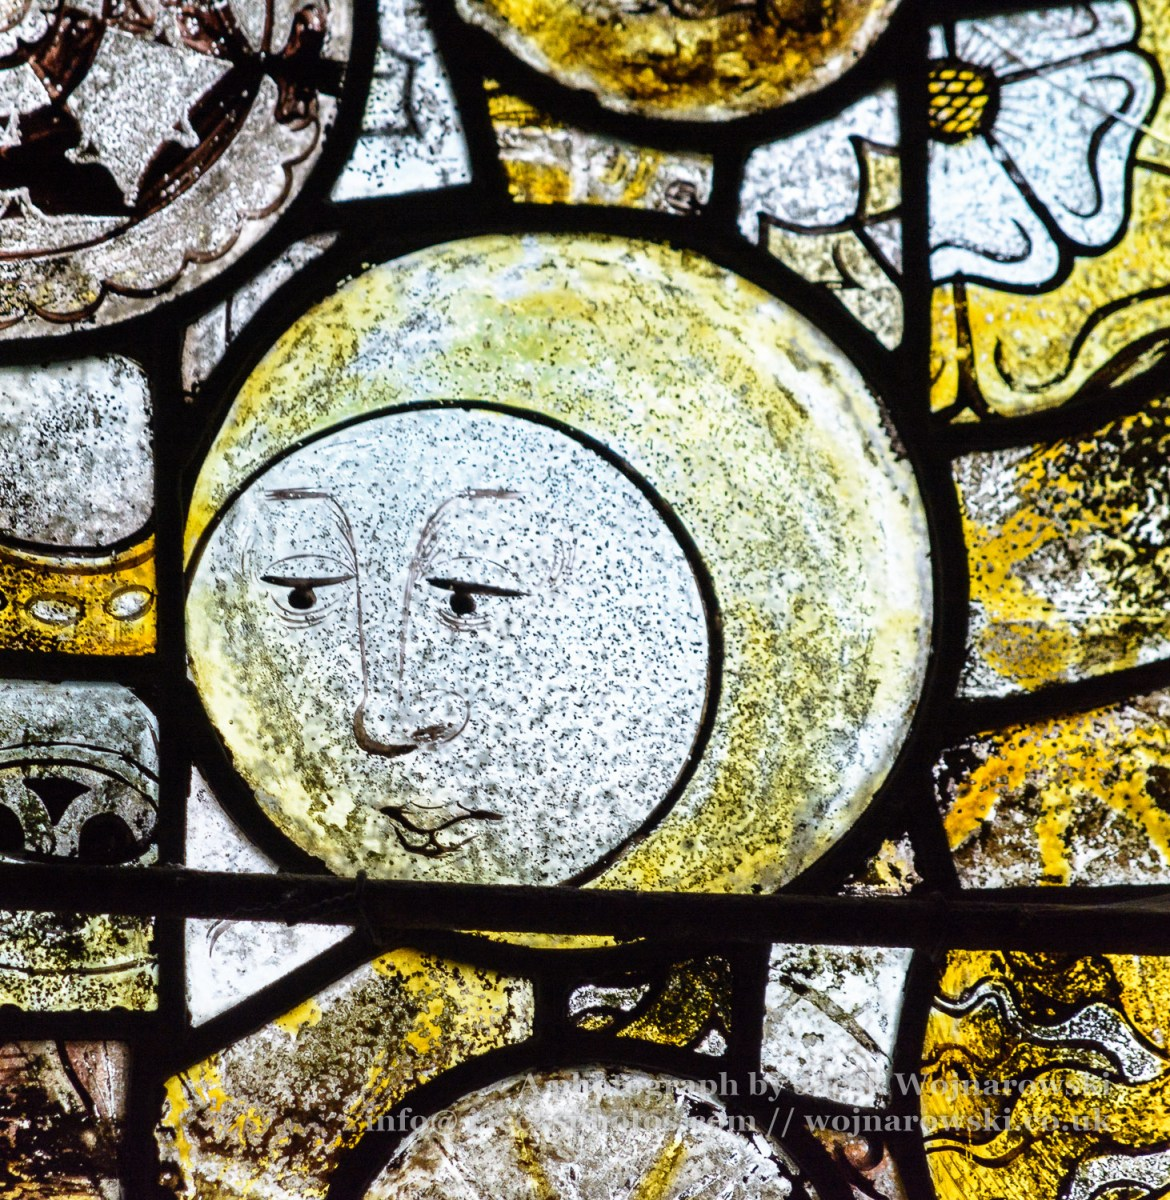 St Andrews Church Stained Glass Close up The Man in The Moon